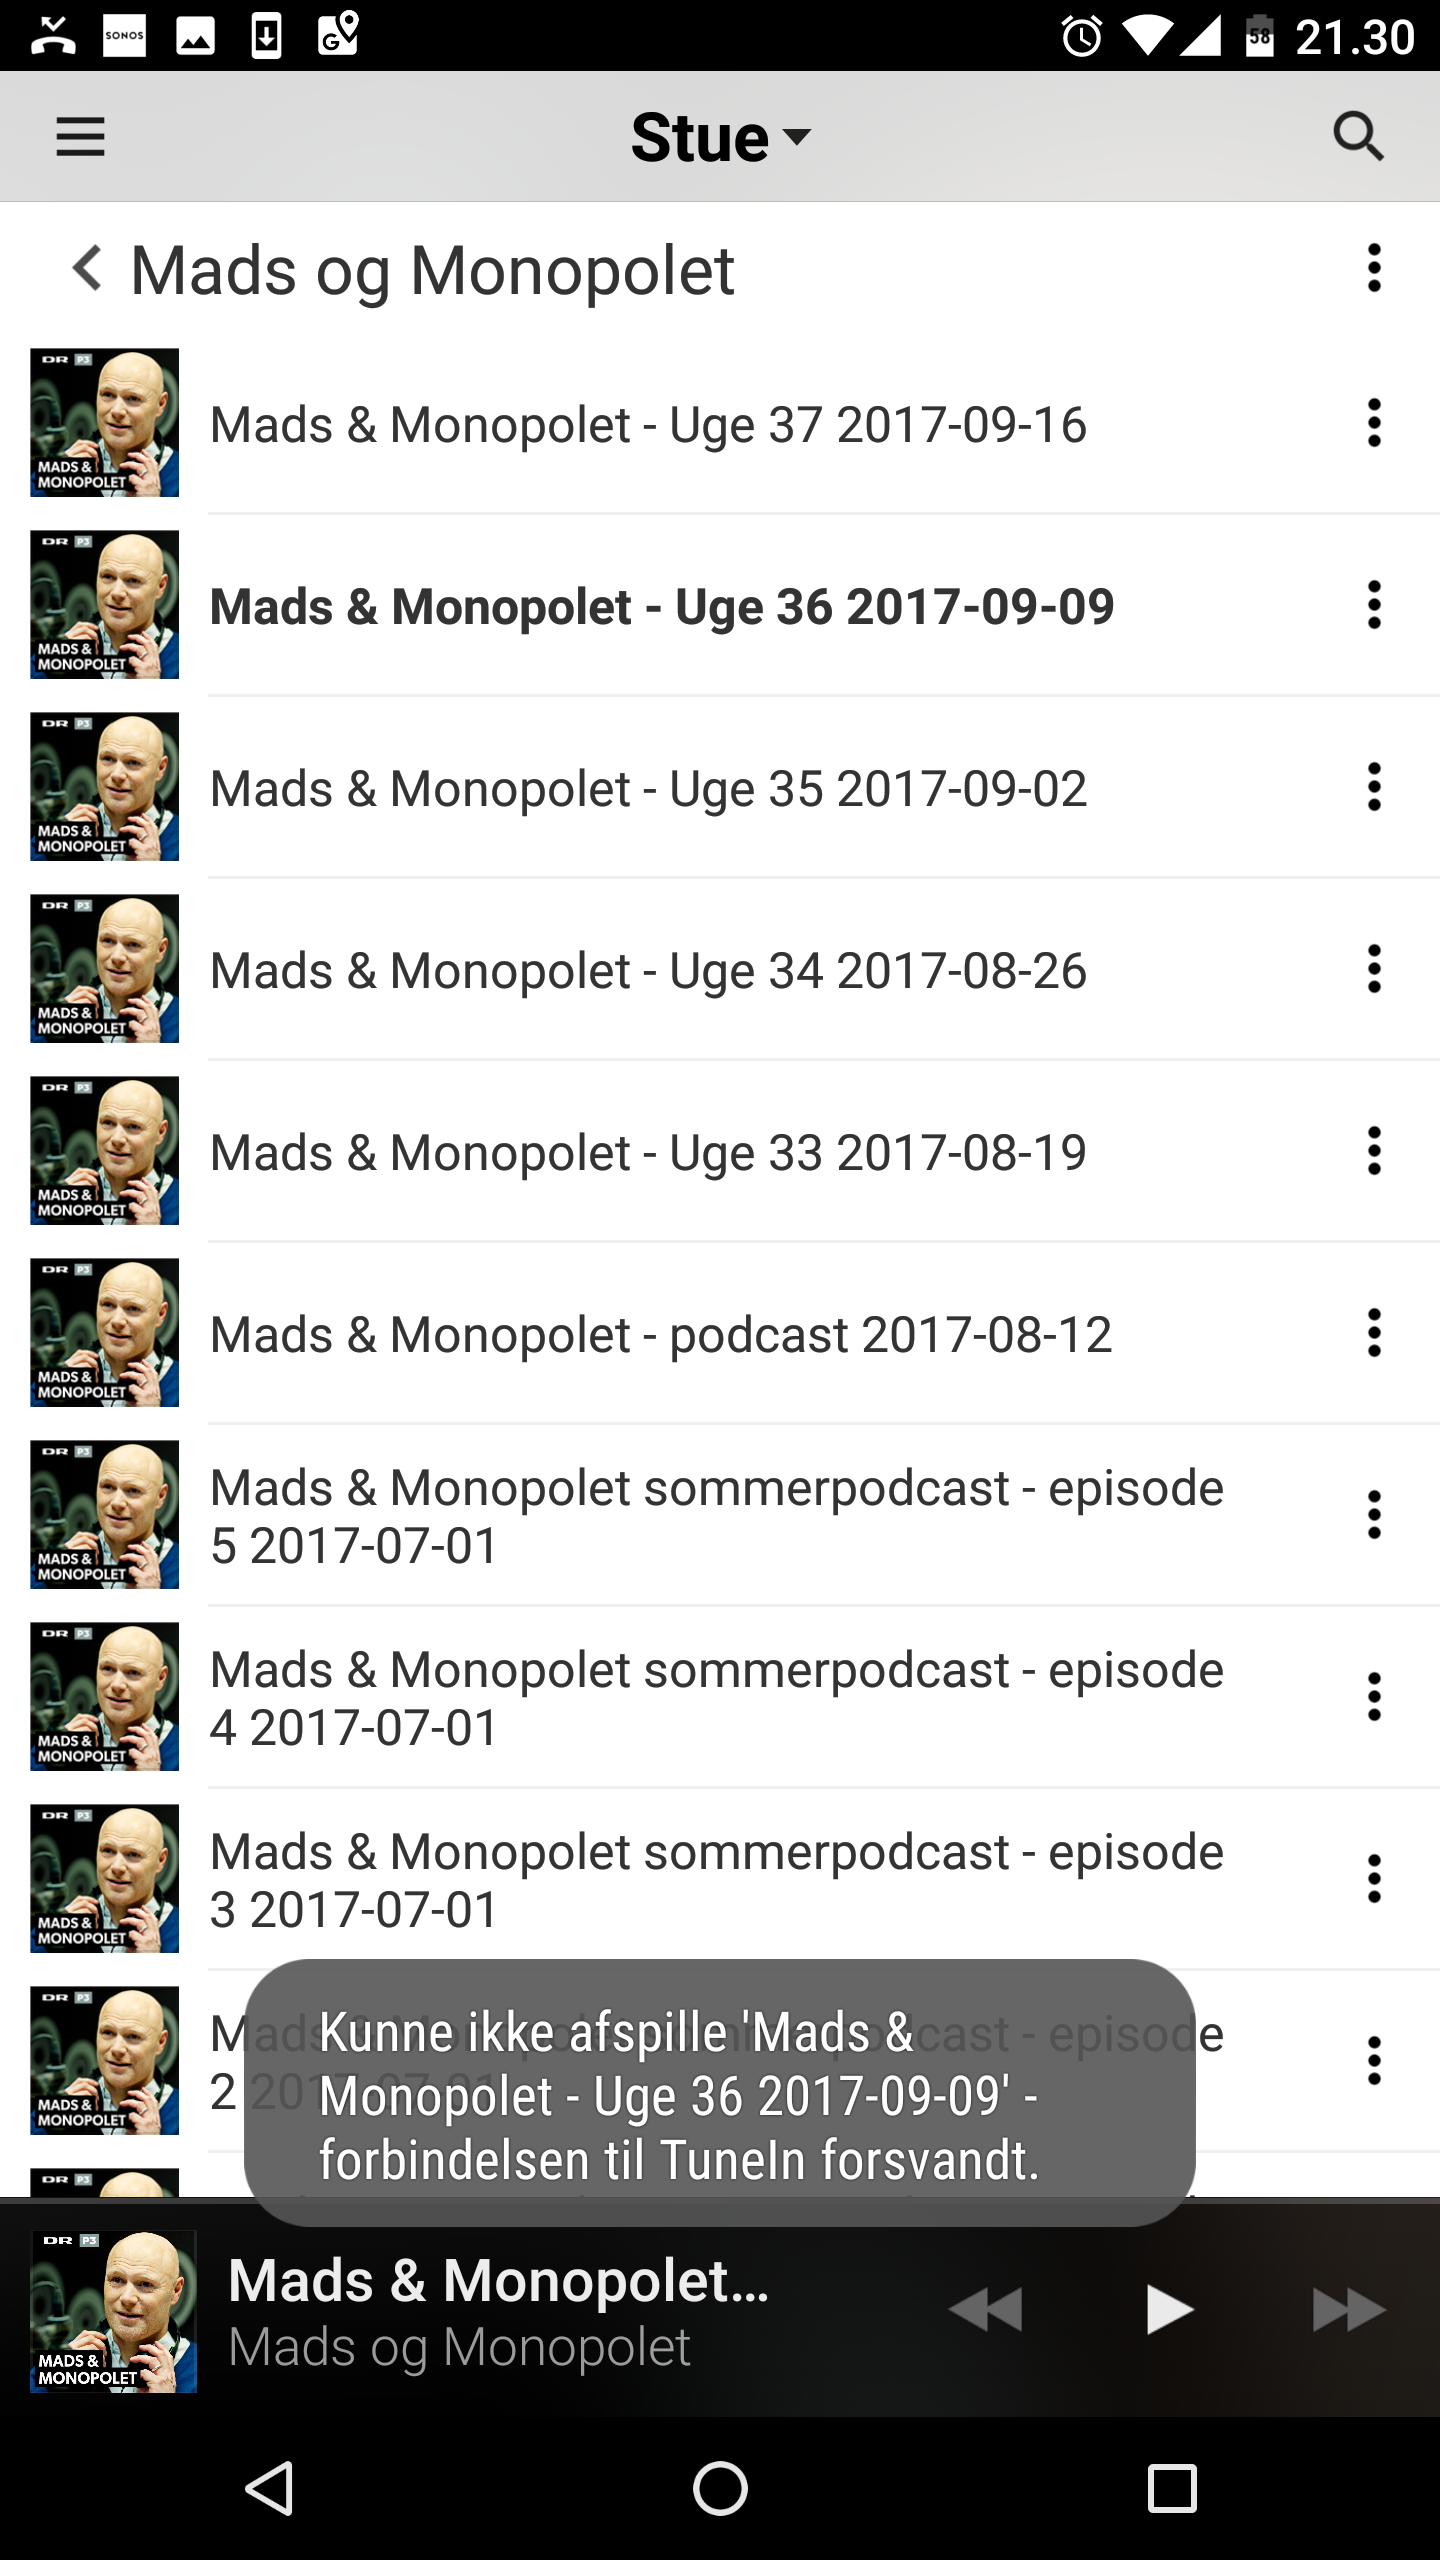 Podcasts from Danish Radio (DR) not playing (the connection